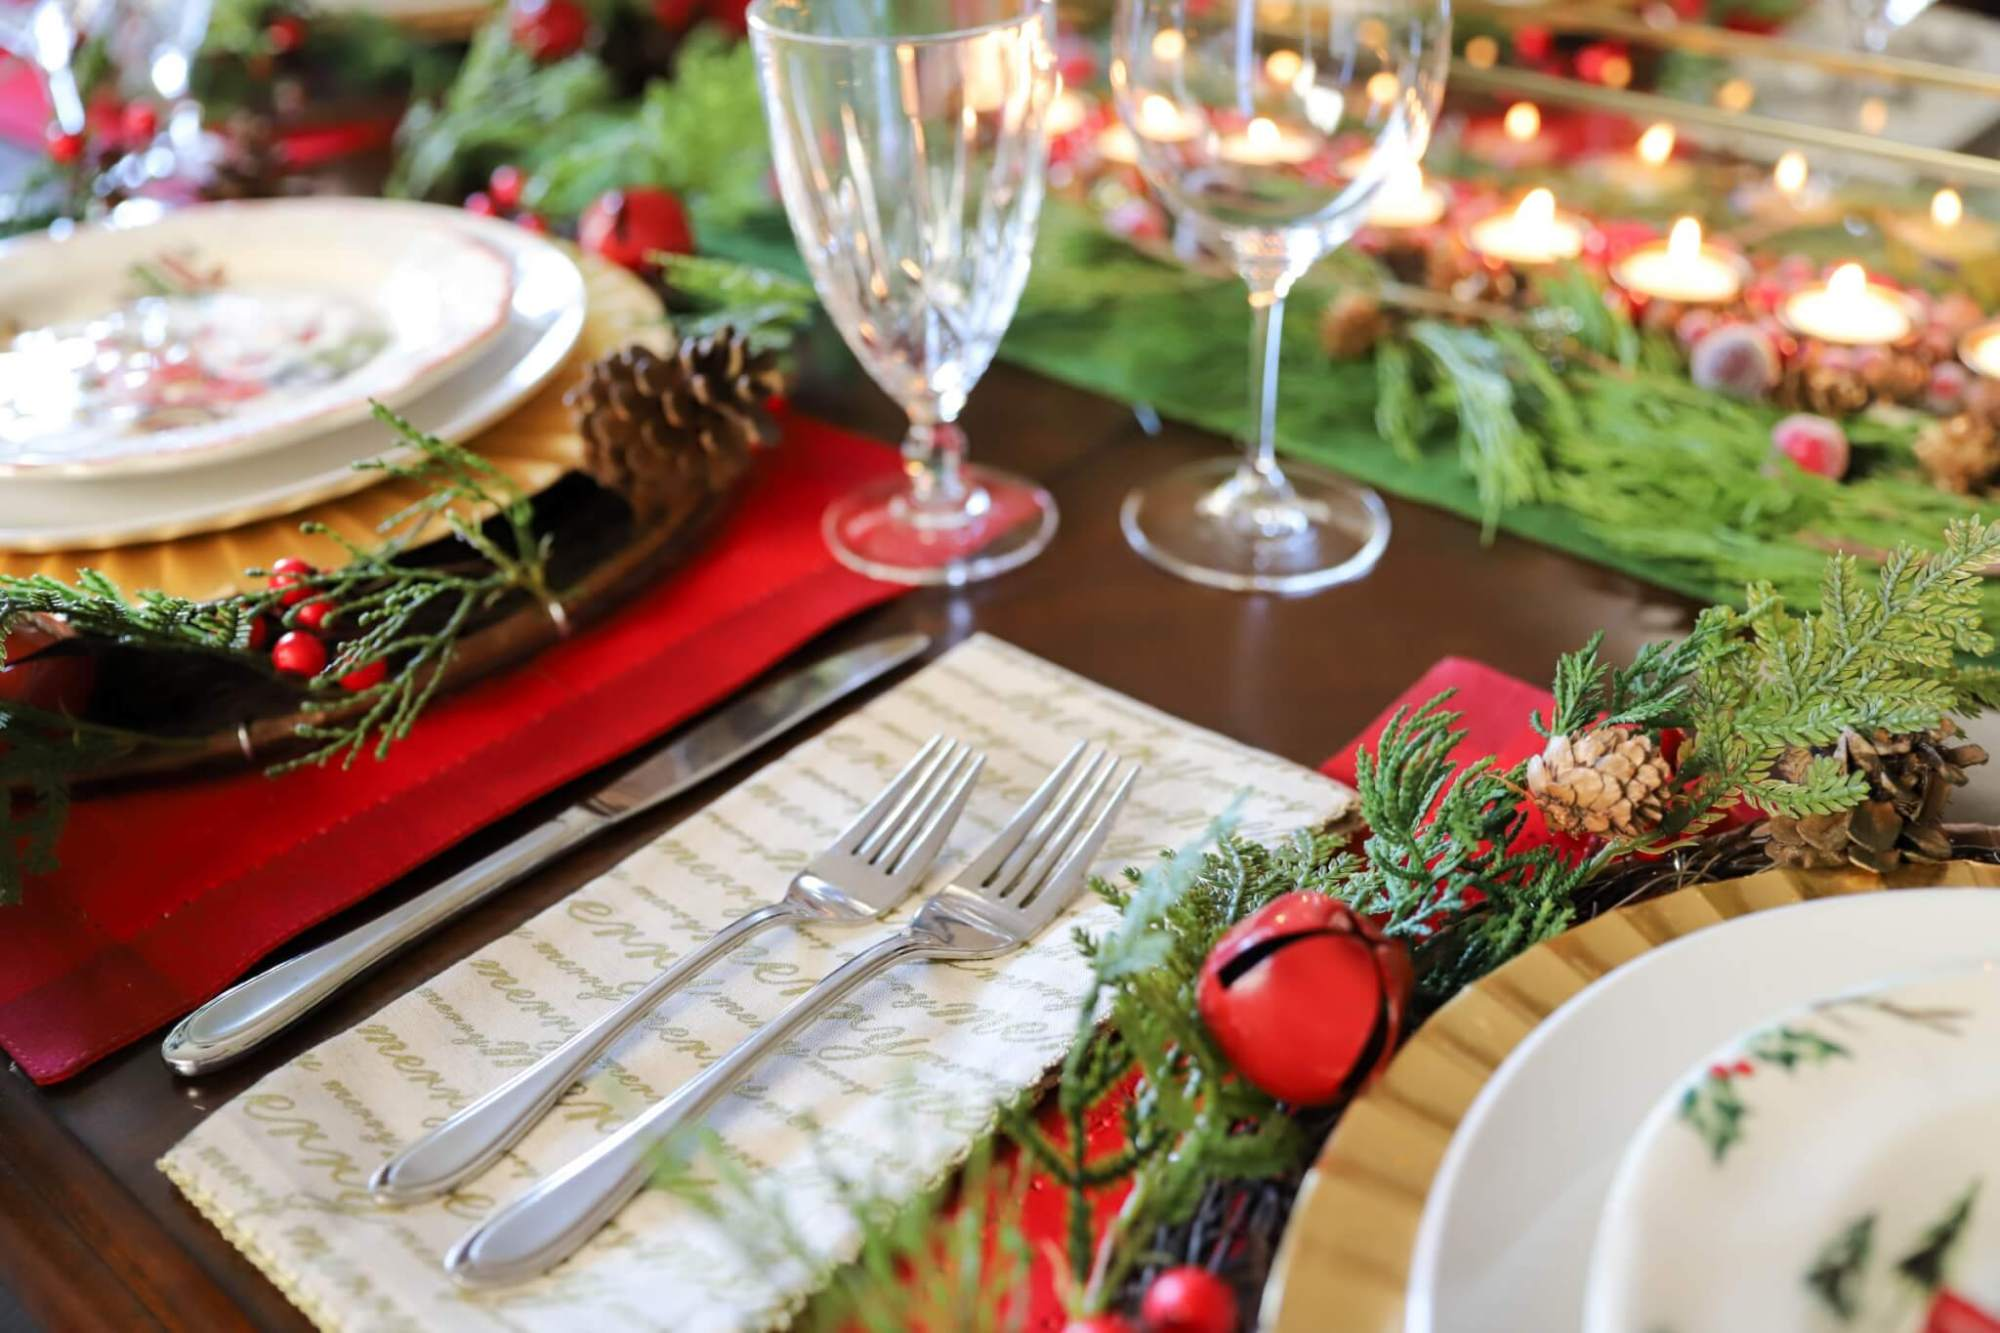 hight resolution of how to set the table table setting ideas ideas for holiday table settings